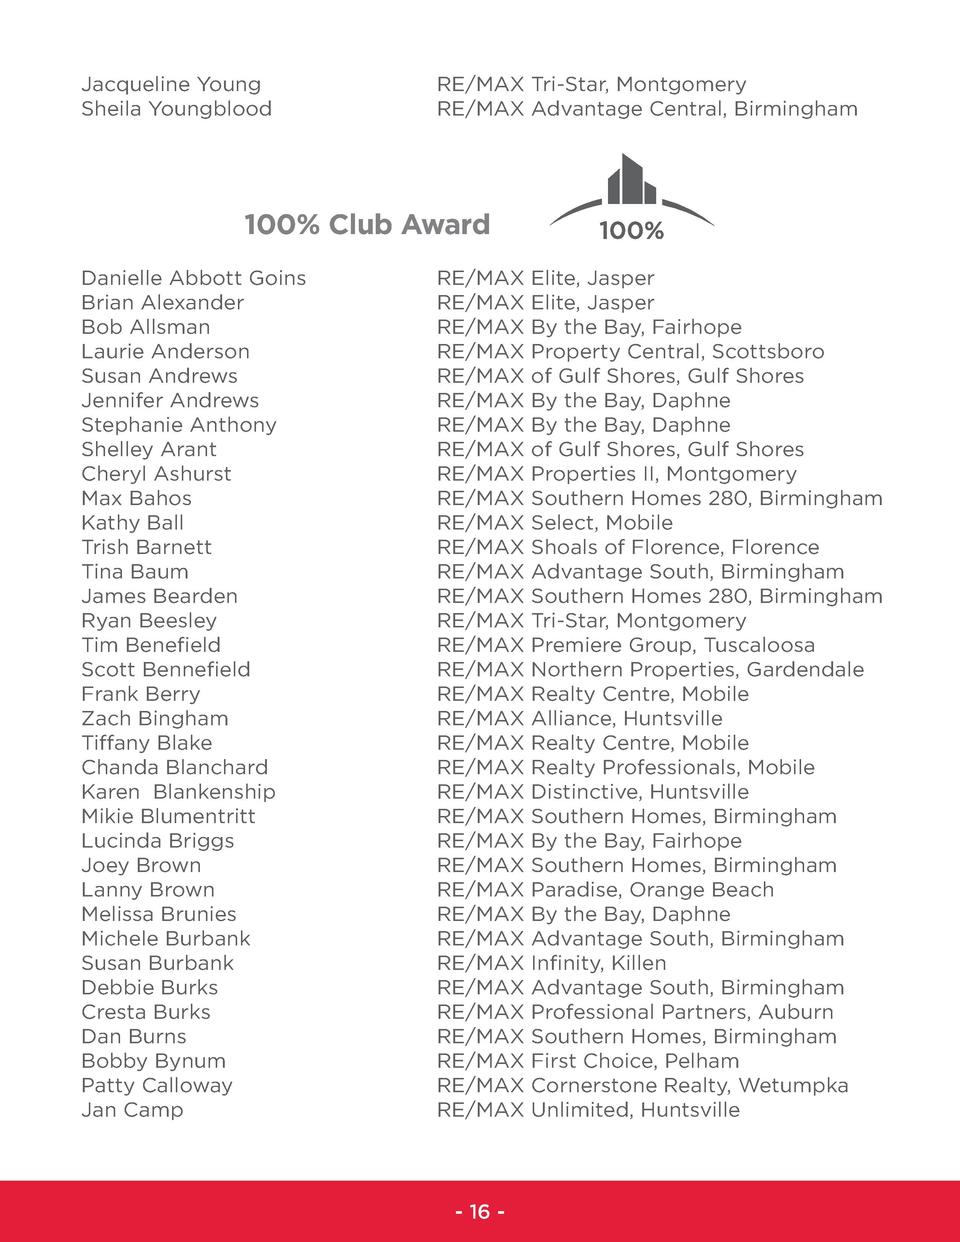 Jacqueline Young Sheila Youngblood  RE MAX Tri-Star, Montgomery RE MAX Advantage Central, Birmingham  100  Club Award Dani...